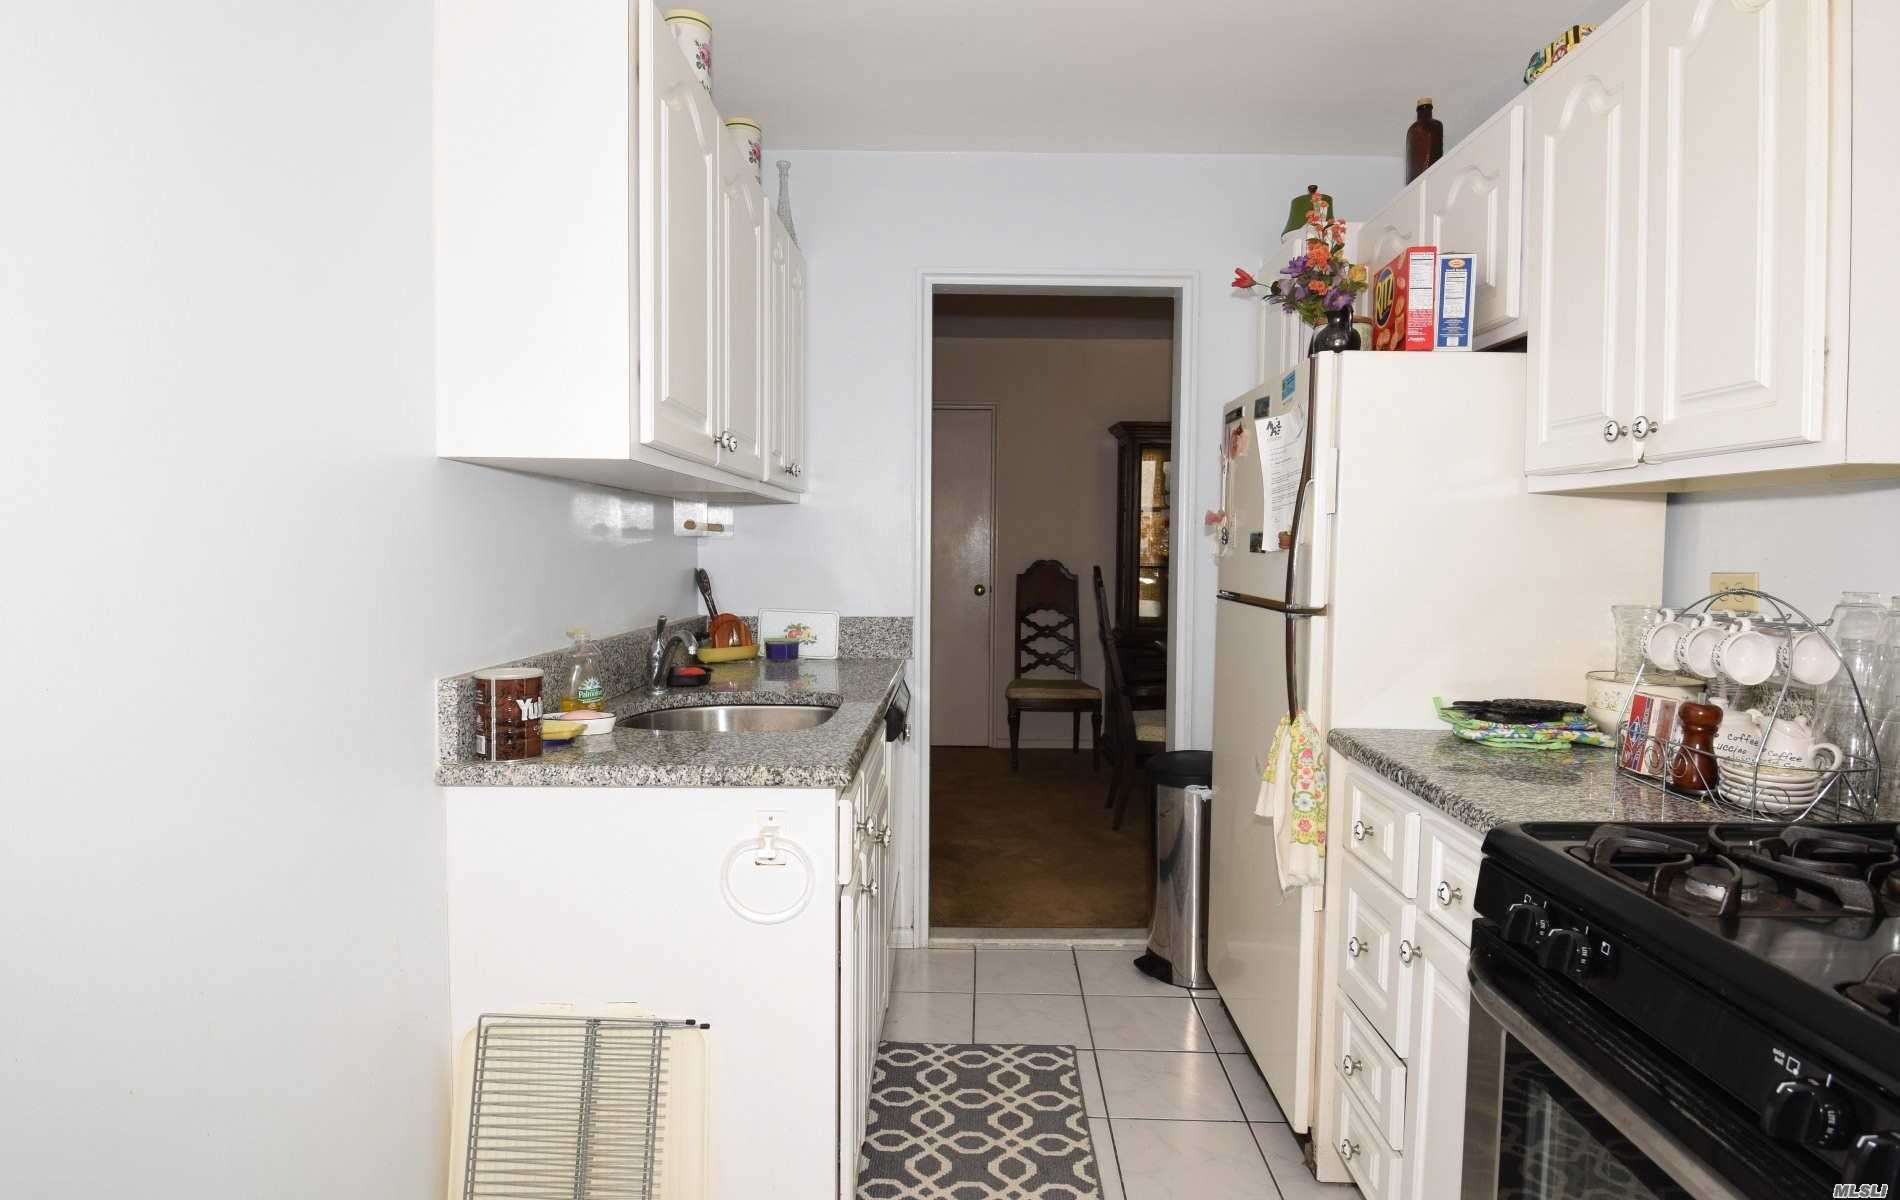 Minimum 20% Downpayment Required For This Sunny And Spacious 1100 Sq Ft (Junior 4) Corner Unit Apartment In A Great Building-Largest Junior 4 Model. Maintenance Includes All Utilities (Heat, Water, Gas, Electric). Convenient To Transportation, Express Bus To Manhattan And Bay Terrace Shopping. Elevator Building! Parking Space Available $31/Monthly. Plenty Of Closets Throughout. Seller Pays Waiver/Flip Tax.